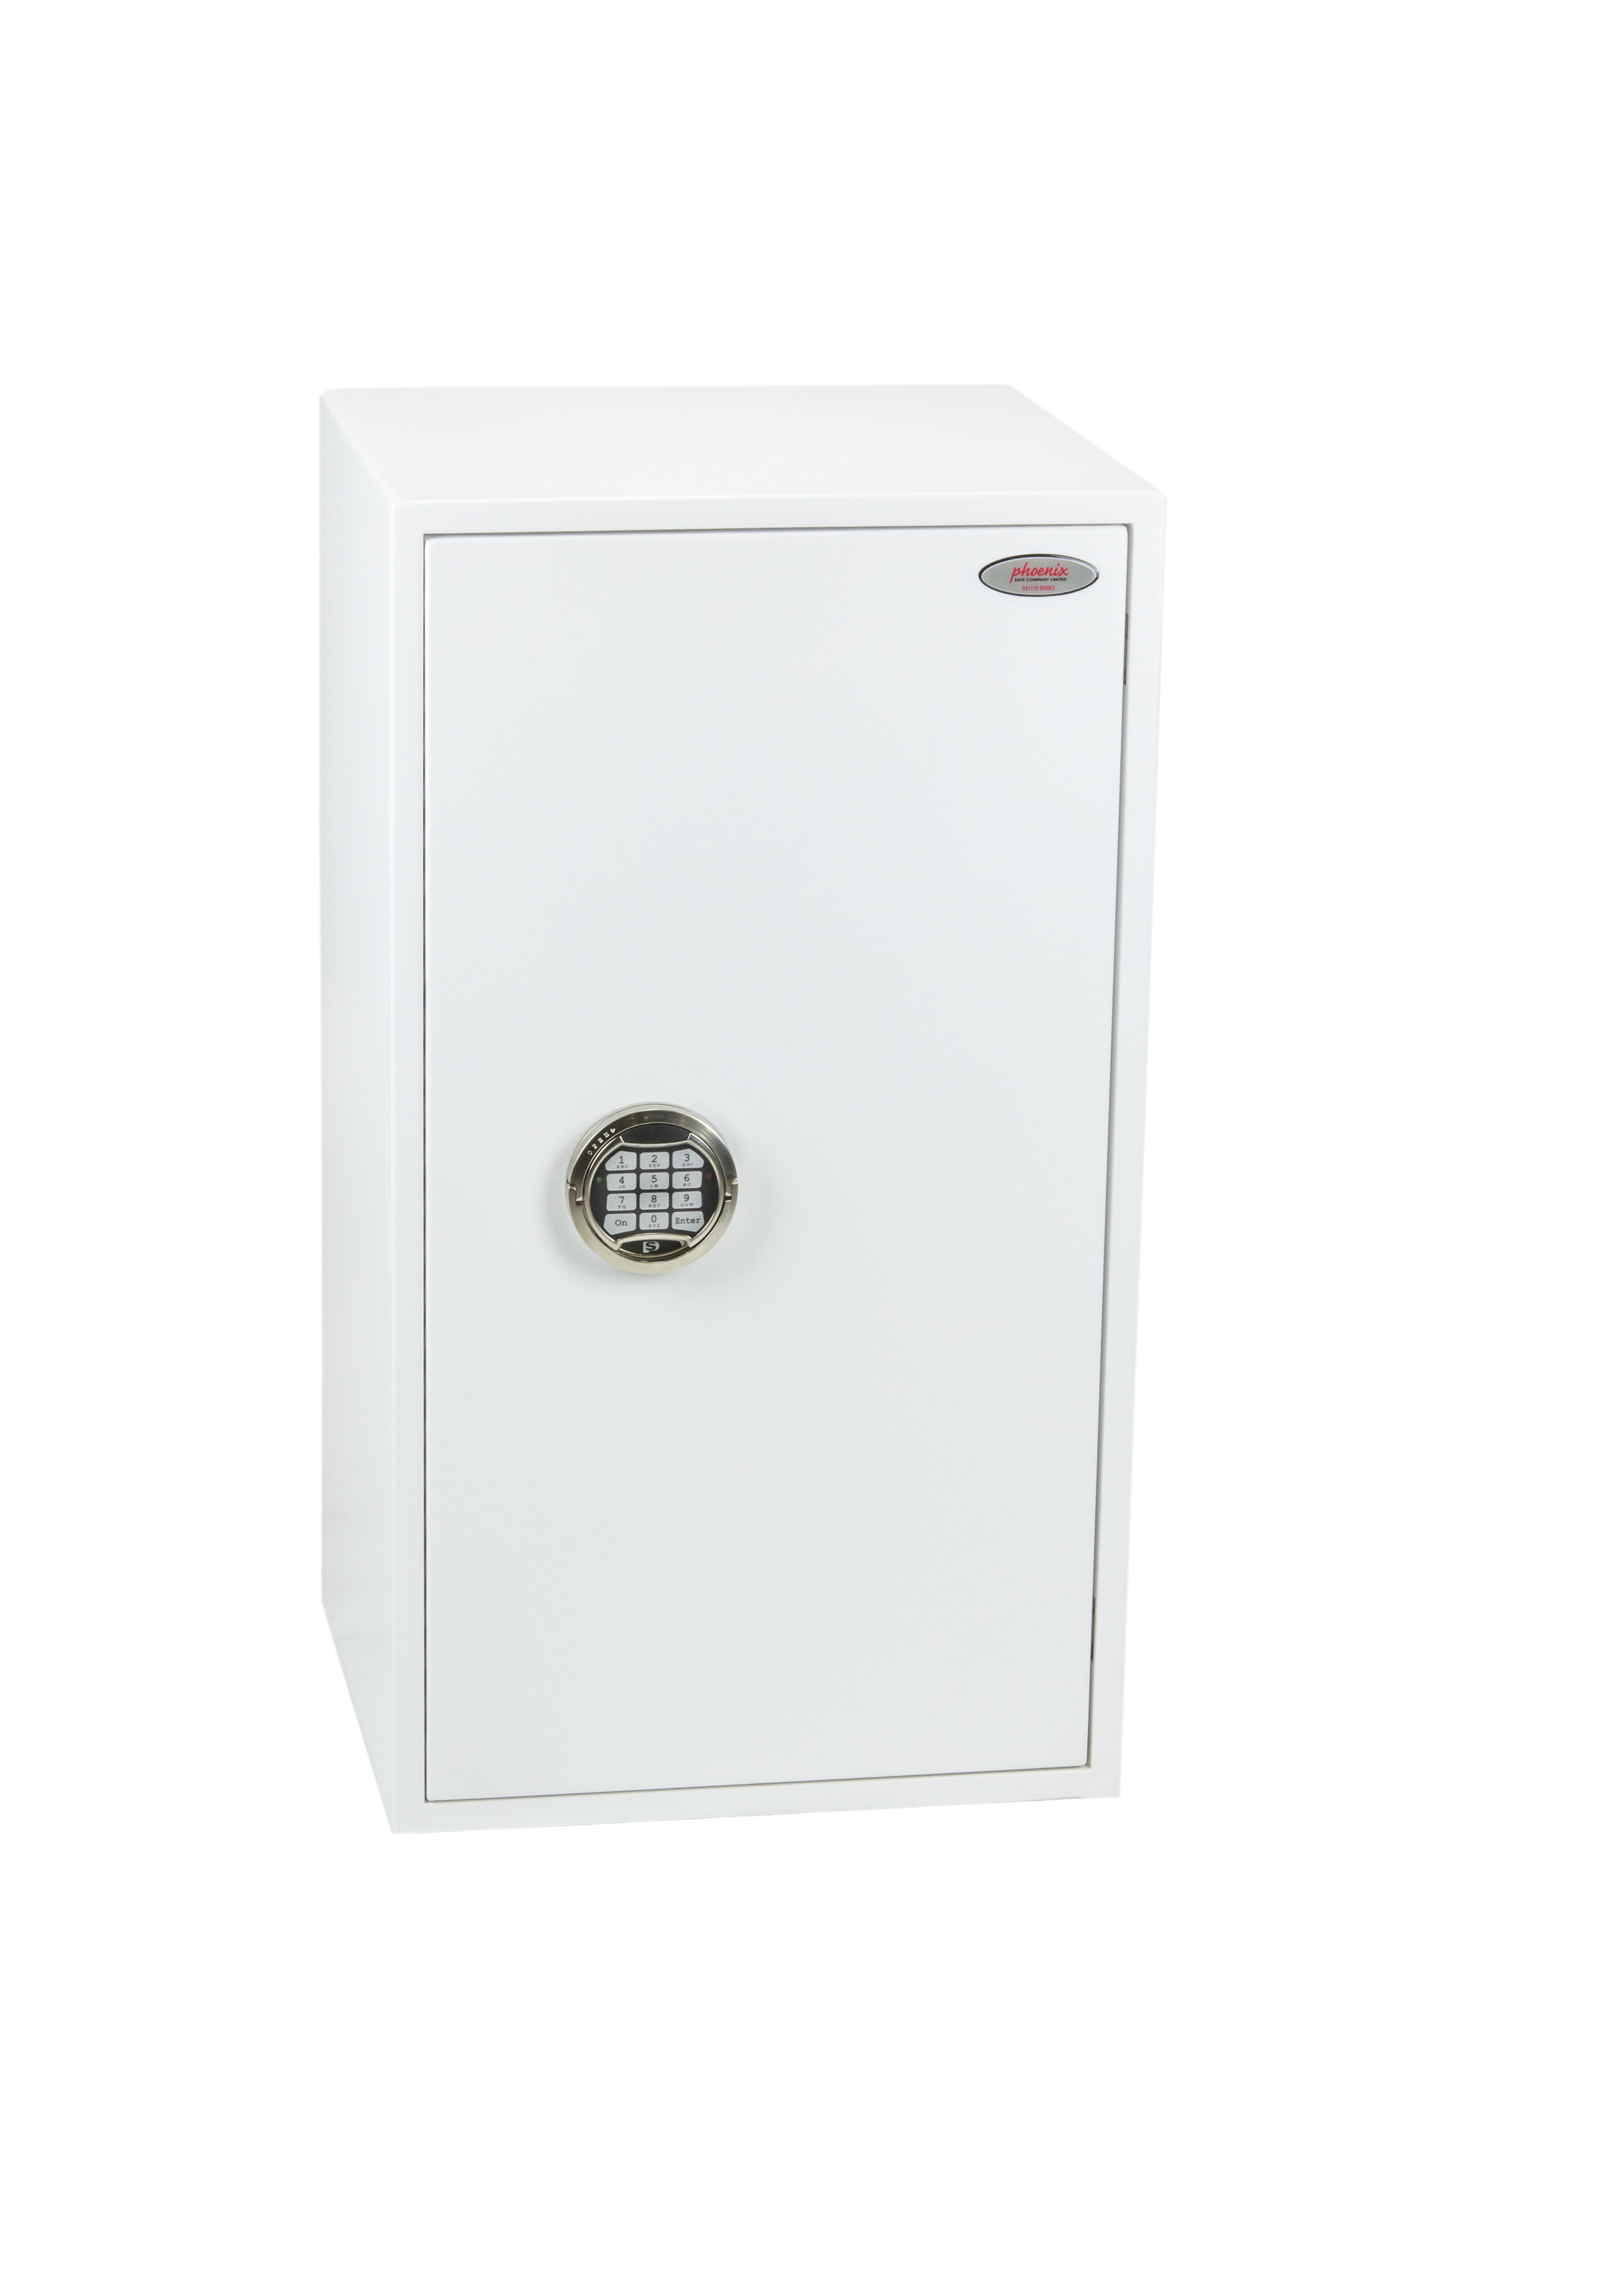 Safes Phoenix Fortress Size 4 S2 Security Safe Electronic Lock White SS1184E